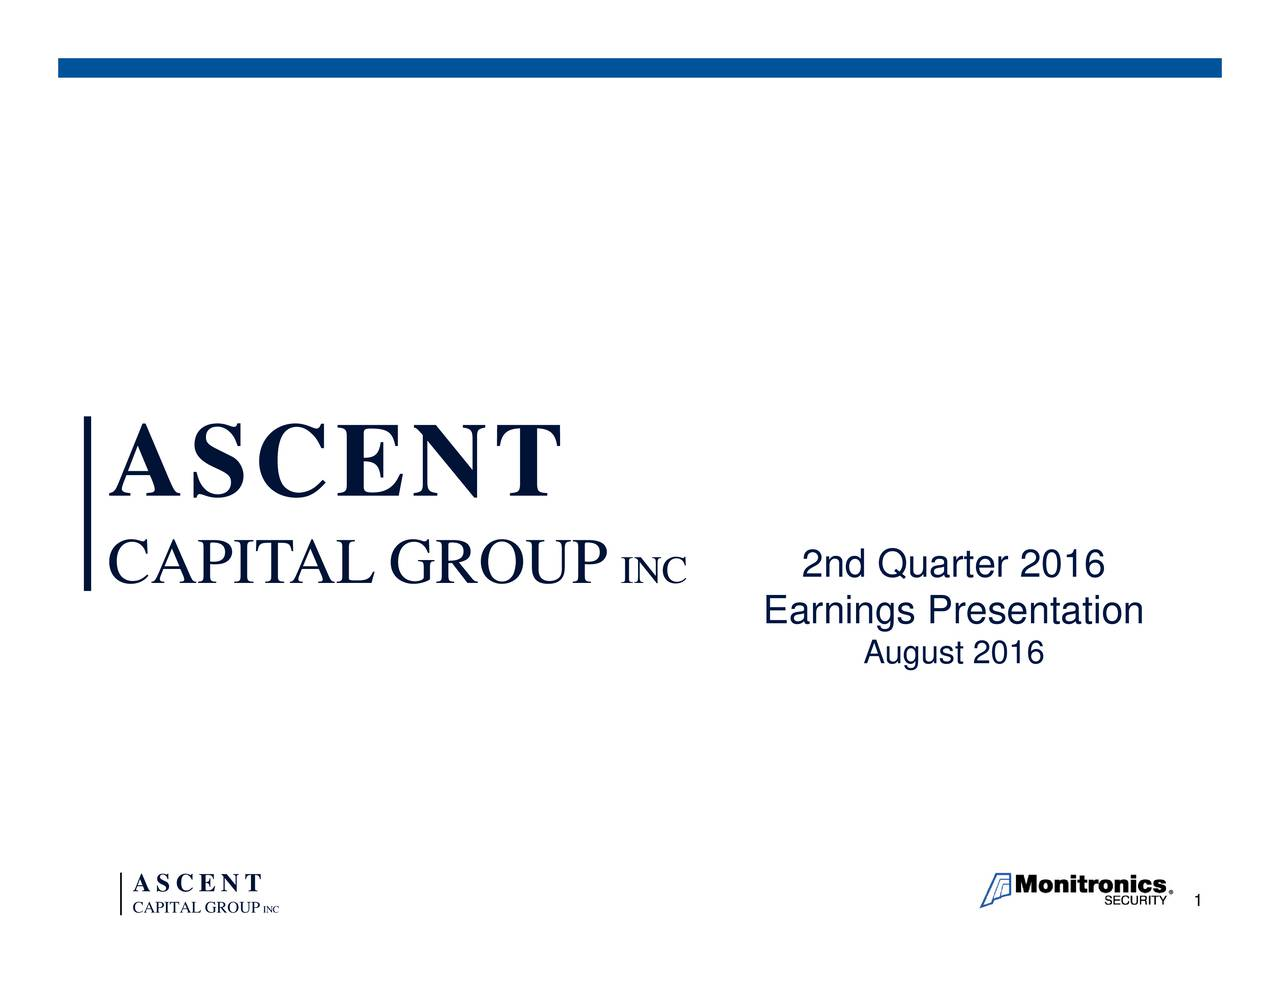 August 2016 2nd Quarter 2016 Earnings Presentation INC INC ACIGROUP AS CACPETANLGROUP